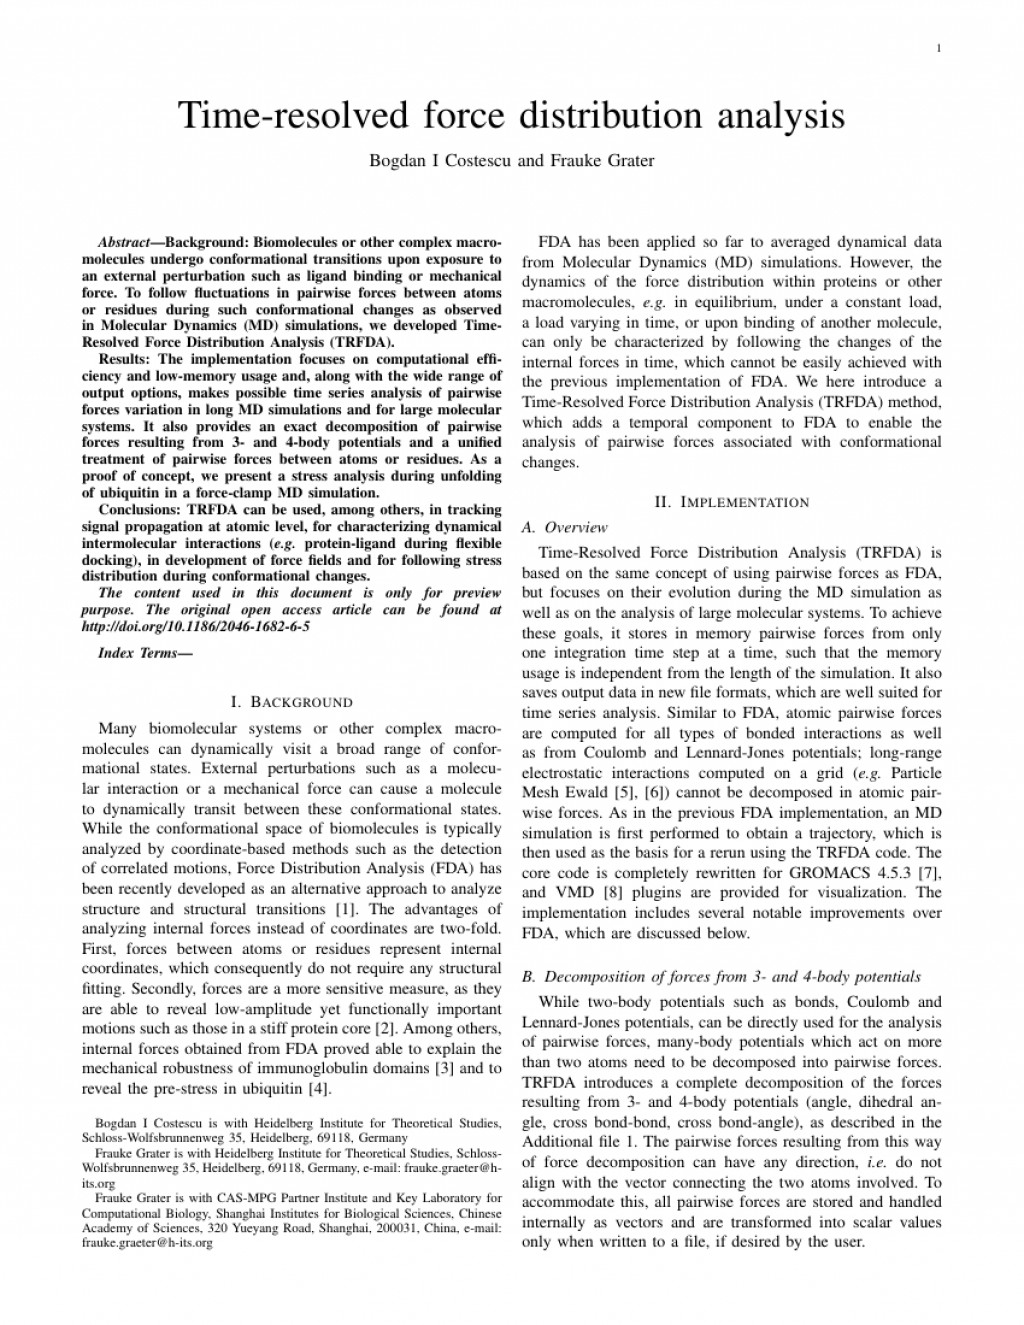 002 Output Ieee Researchs In Computer Science Unusual Research Papers 2017 Large